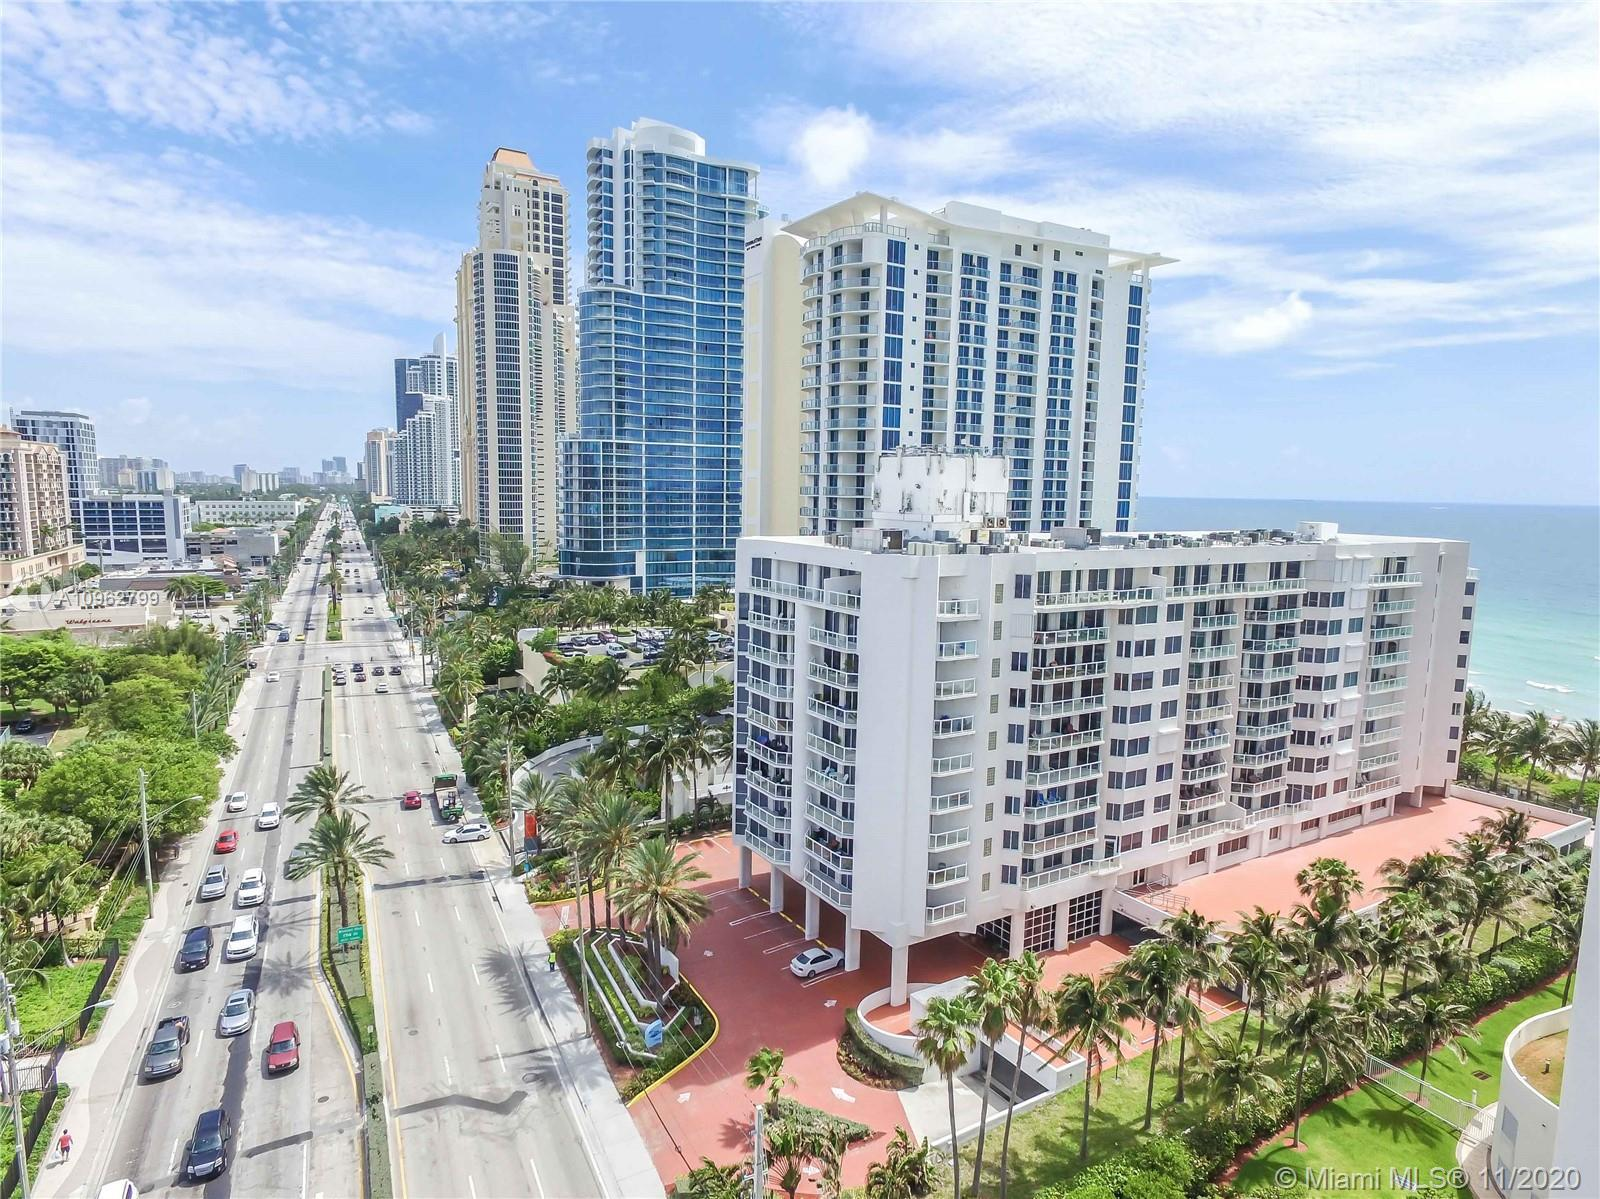 2/2 APARTMENT IN THE MIDDLE OF SUNNY ISLES BEACH WITH OCEAN AND CITY VIEW FACING SOUTH. DIRECT ACCE